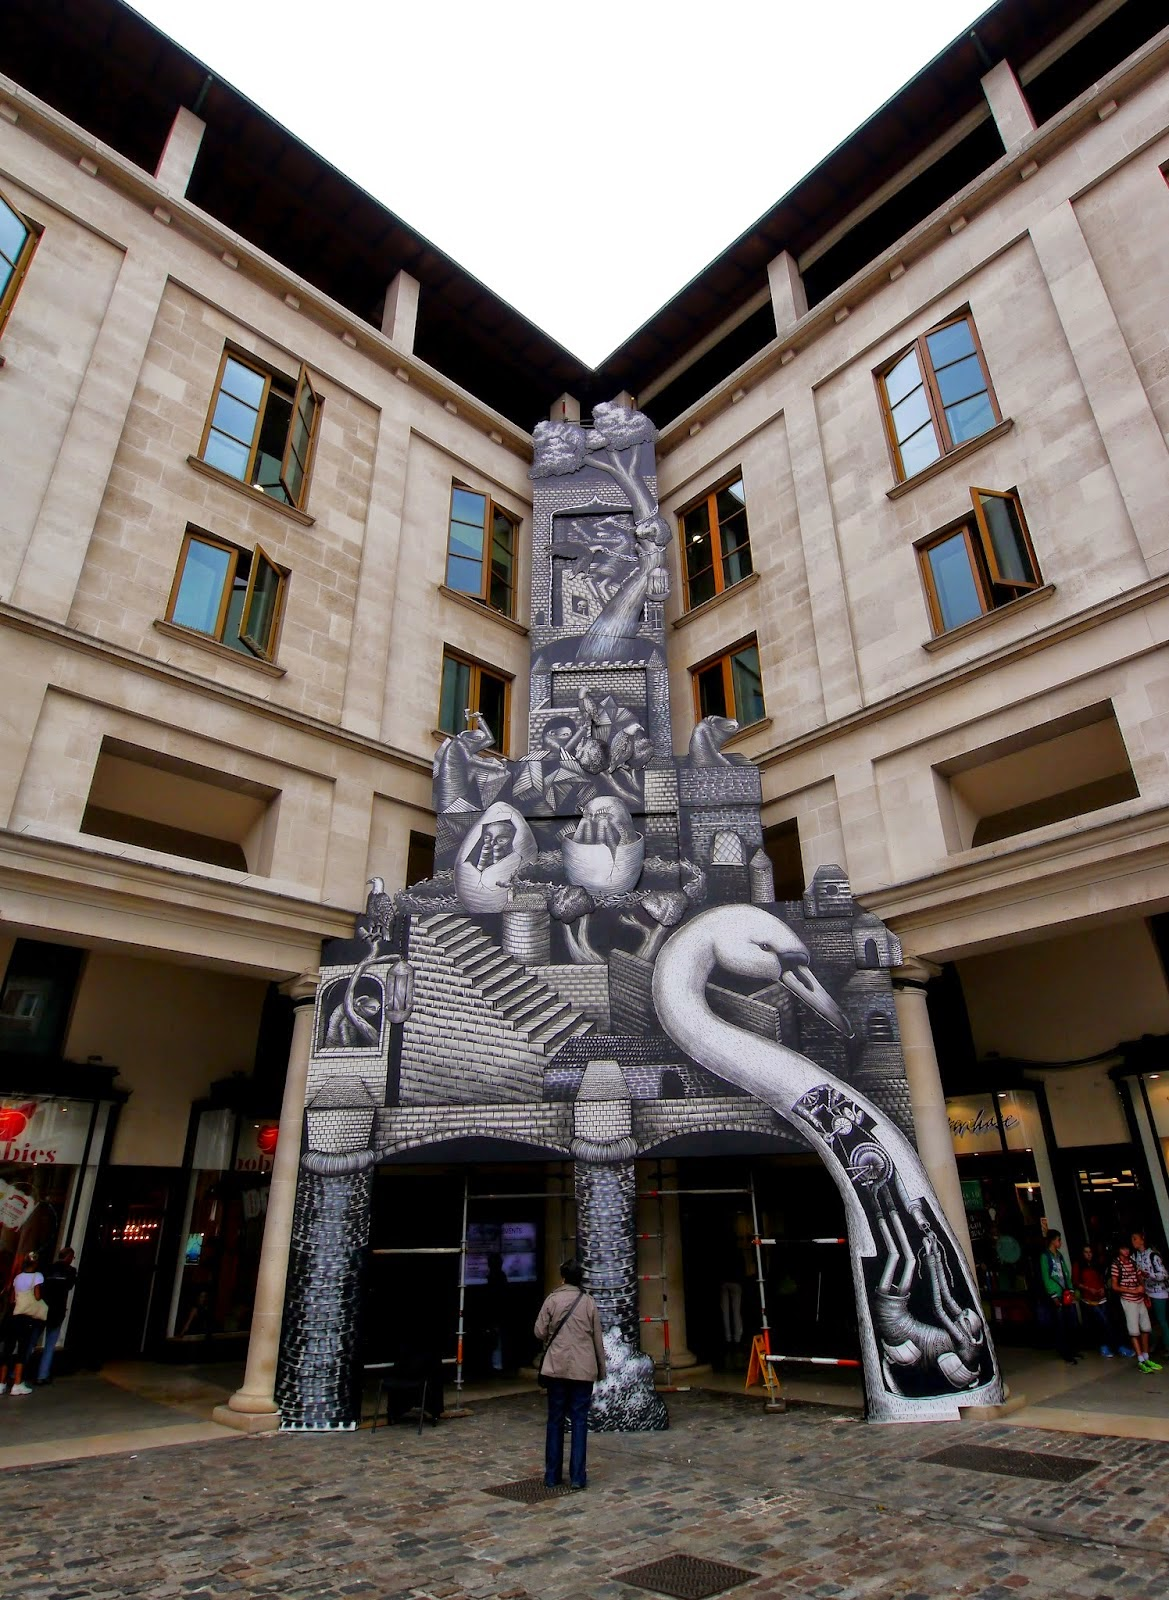 Phlegm is back in the UK where he just finished on this stunning installation for the Royal Opera House in Covent Garden, London, UK.